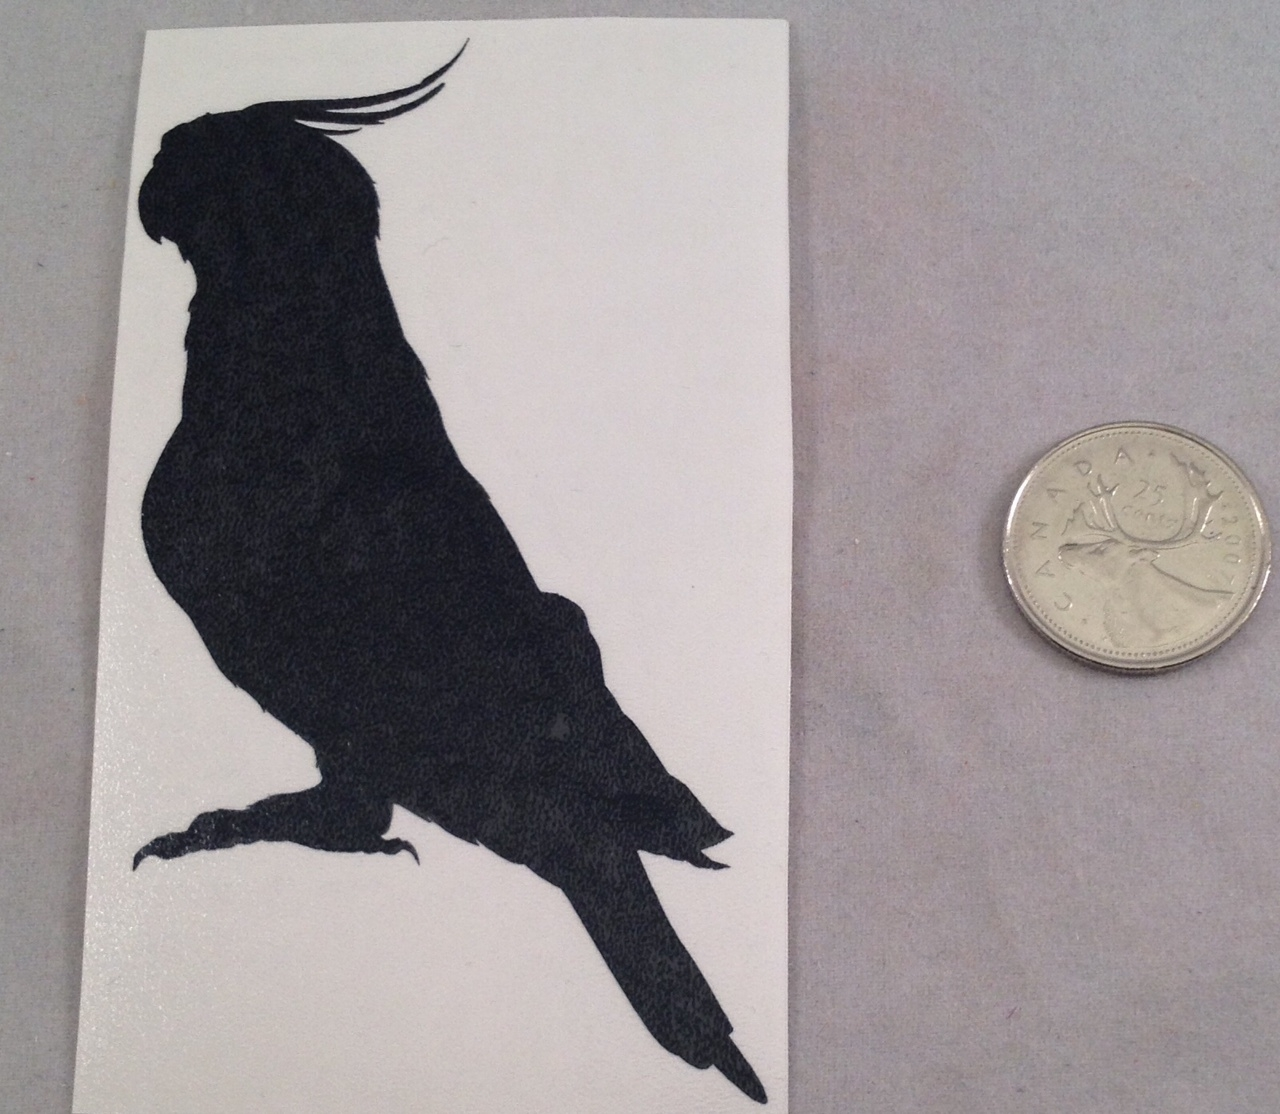 Cockatiel Silhouette Decal - Version 2